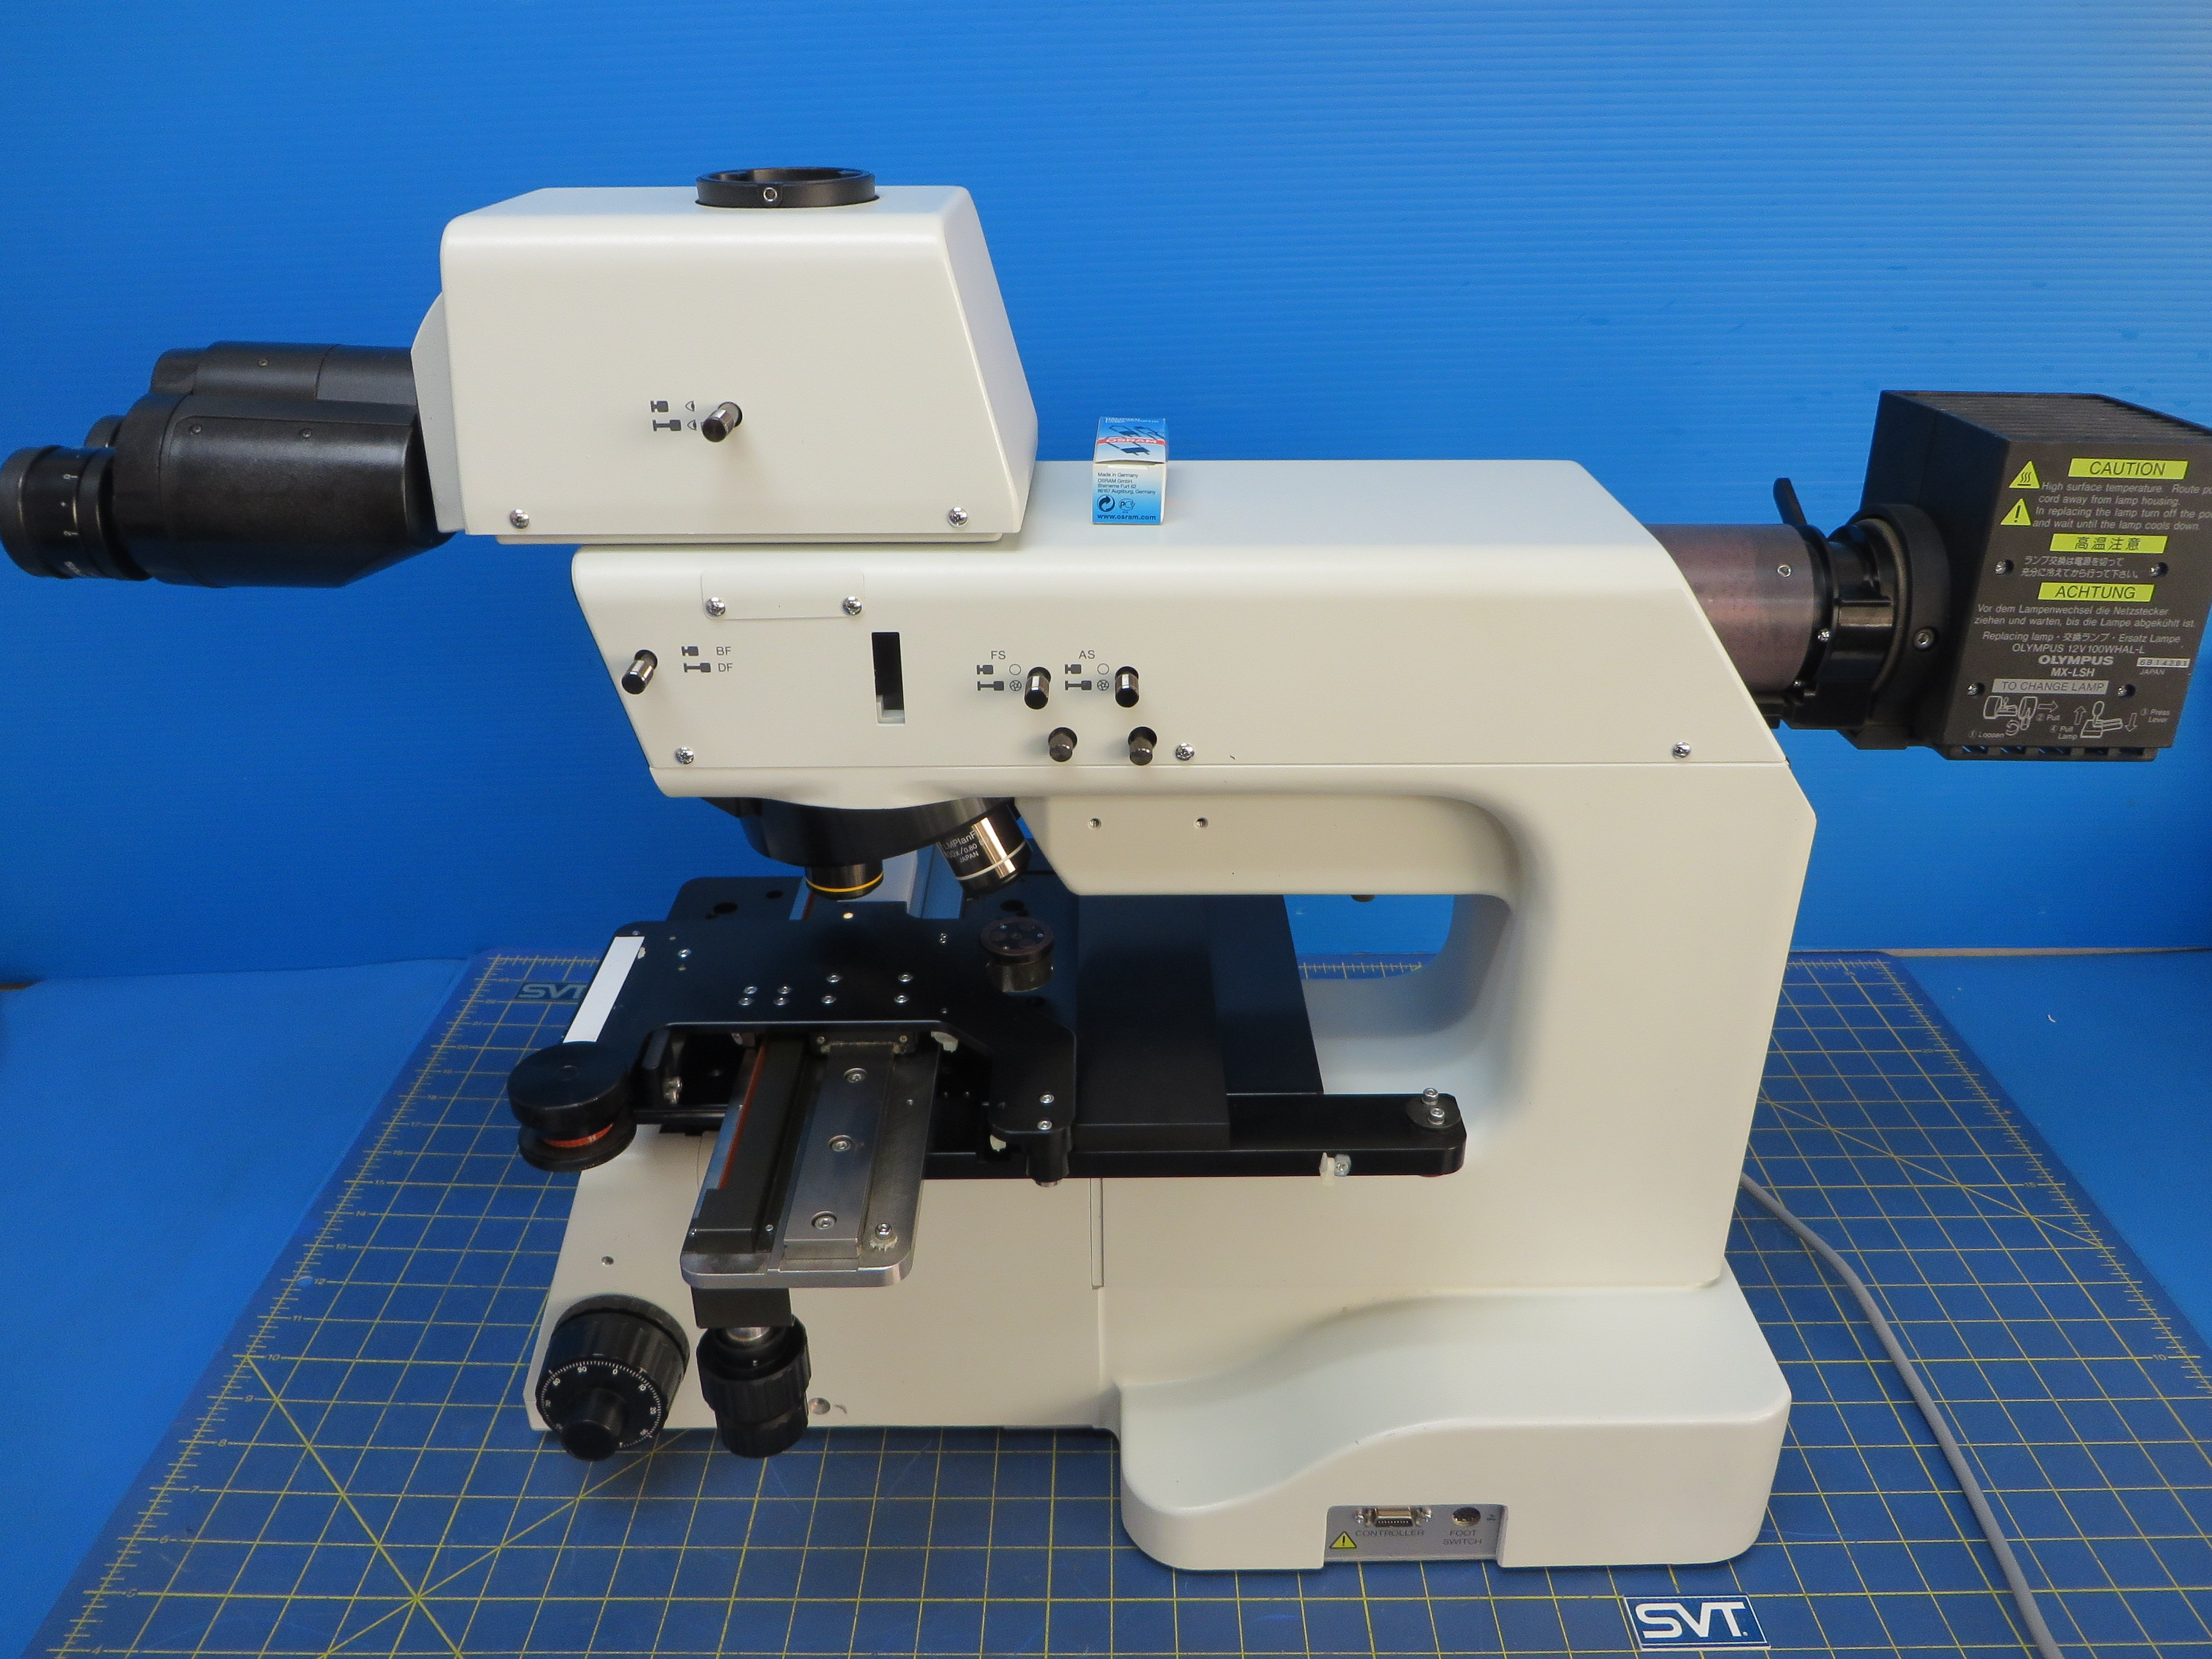 Olympus MX50A-F Inspection Microscope with Olympus LMPlanFI 20x, 50x, 100x Lens